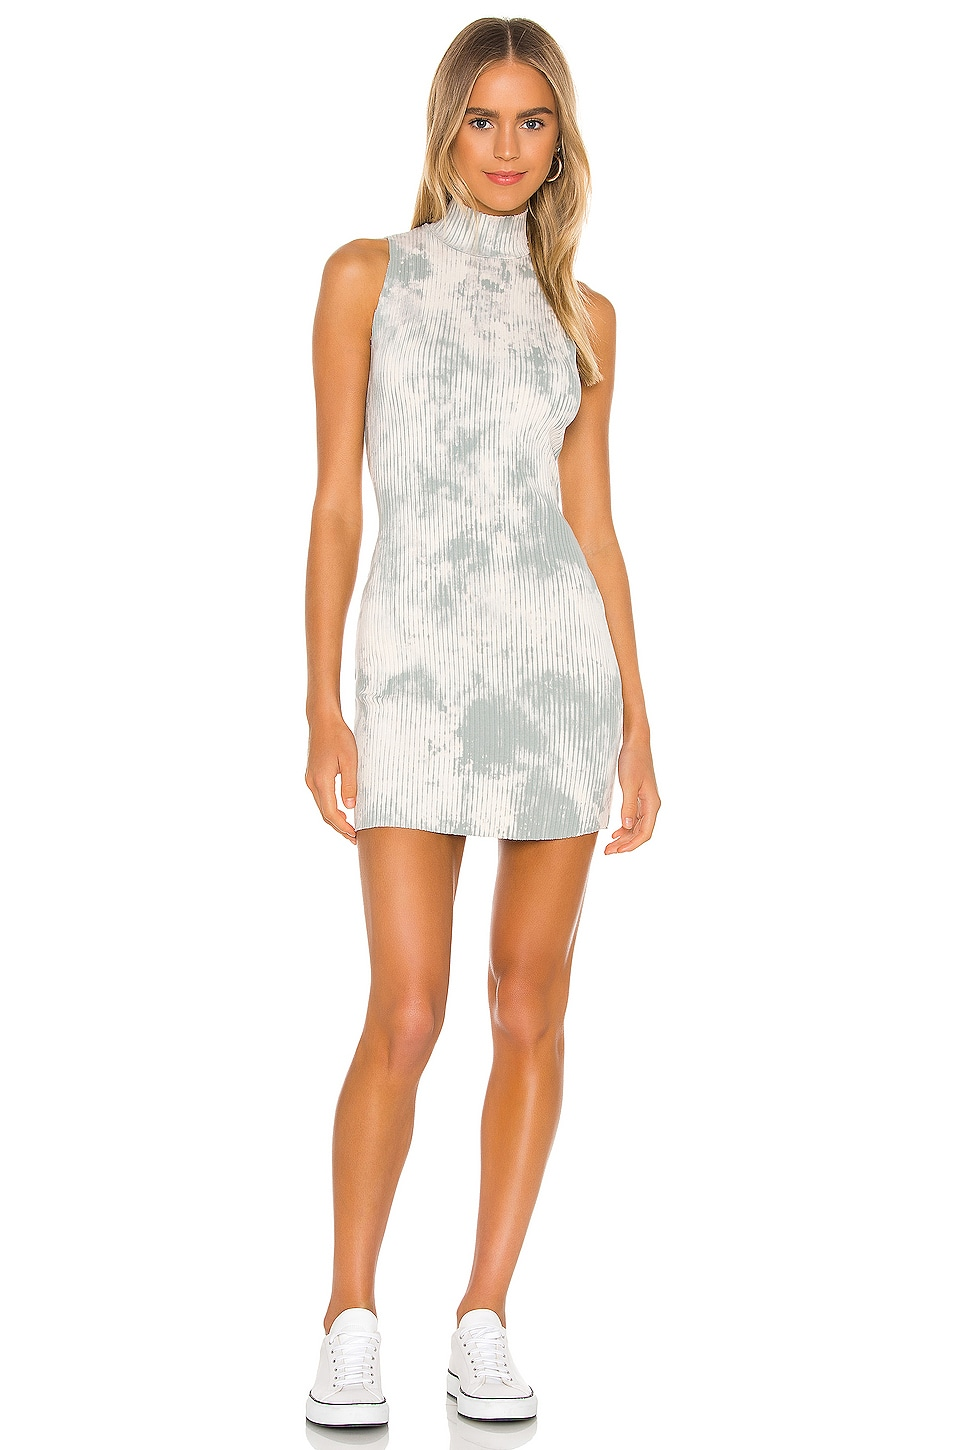 x REVOLVE Ibiza Racerback Dress XO             COTTON CITIZEN                                                                                                       CA$ 224.67 5